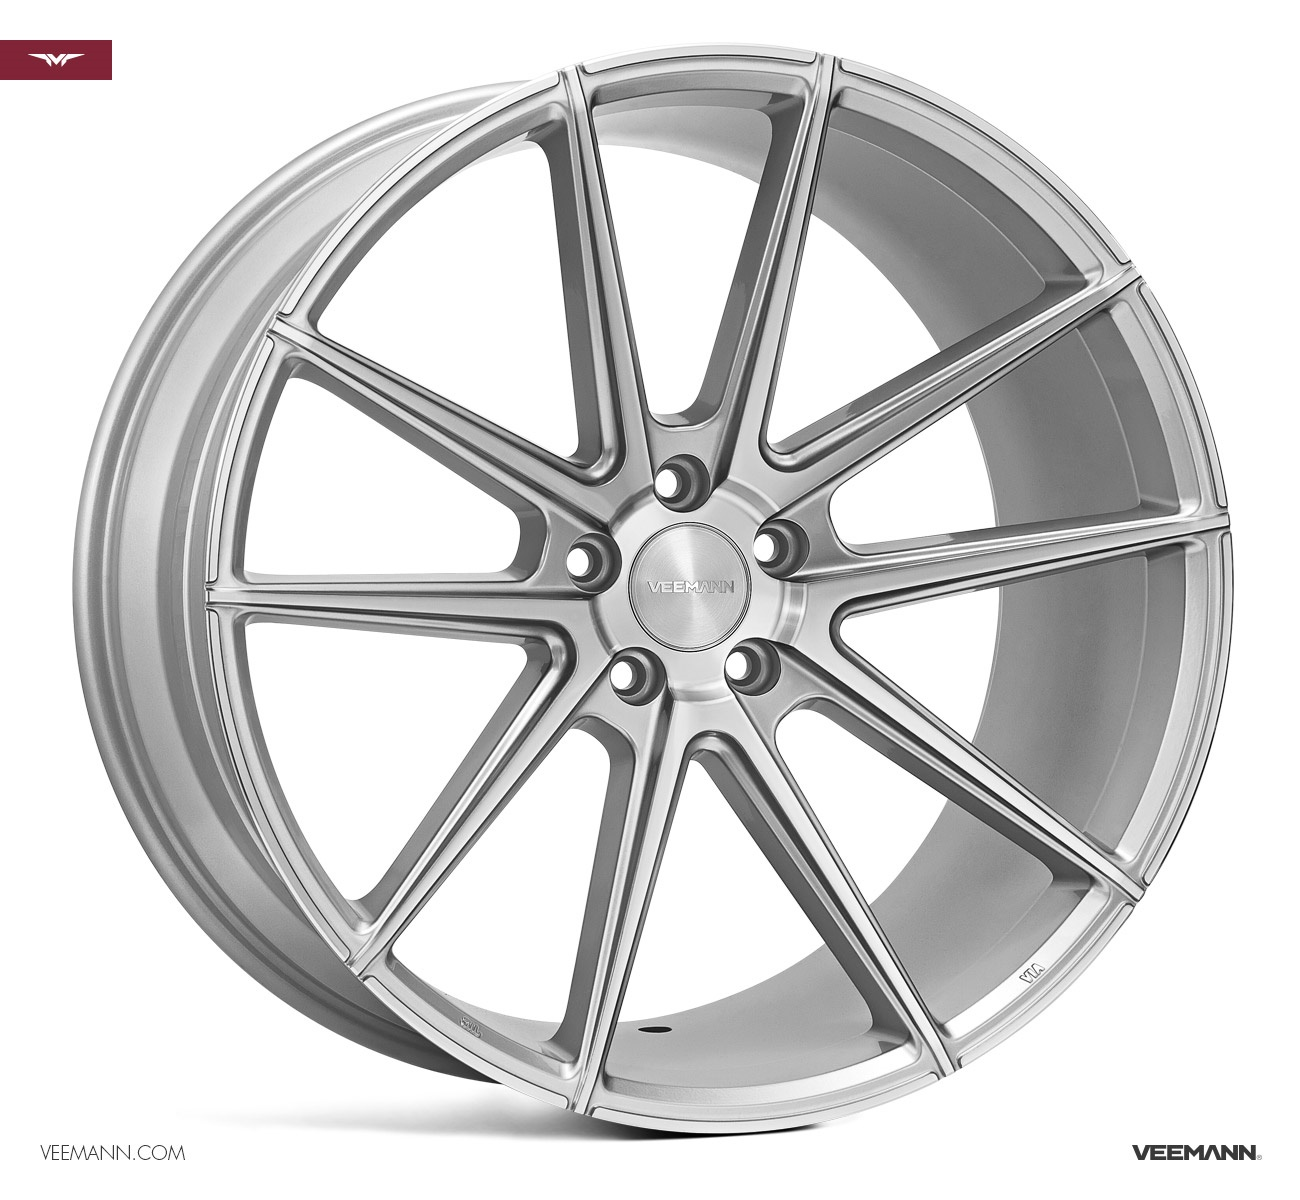 "NEW 21"" VEEMANN V-FS4 ALLOY WHEELS IN SILVER POL WITH DEEPER CONCAVE 10.5"" REARS et32/et42"